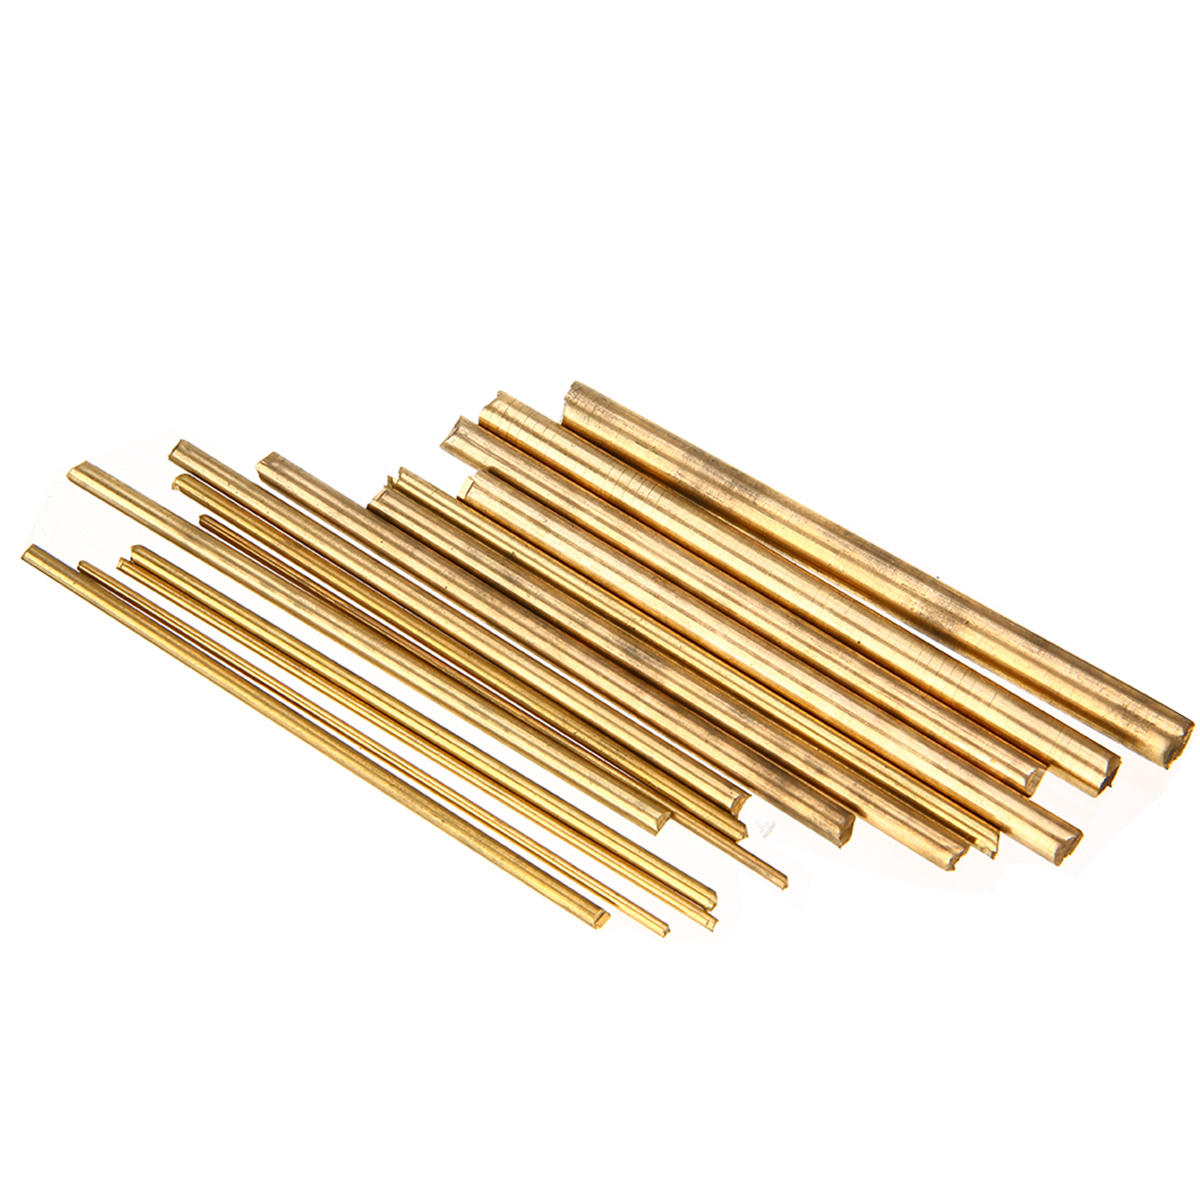 15pcs Durable Brass Round Rod Bar Shafts Watchmaker Lathe DIY Watch Tool Craft Making Parts 100mm Length Mayitr15pcs Durable Brass Round Rod Bar Shafts Watchmaker Lathe DIY Watch Tool Craft Making Parts 100mm Length Mayitr